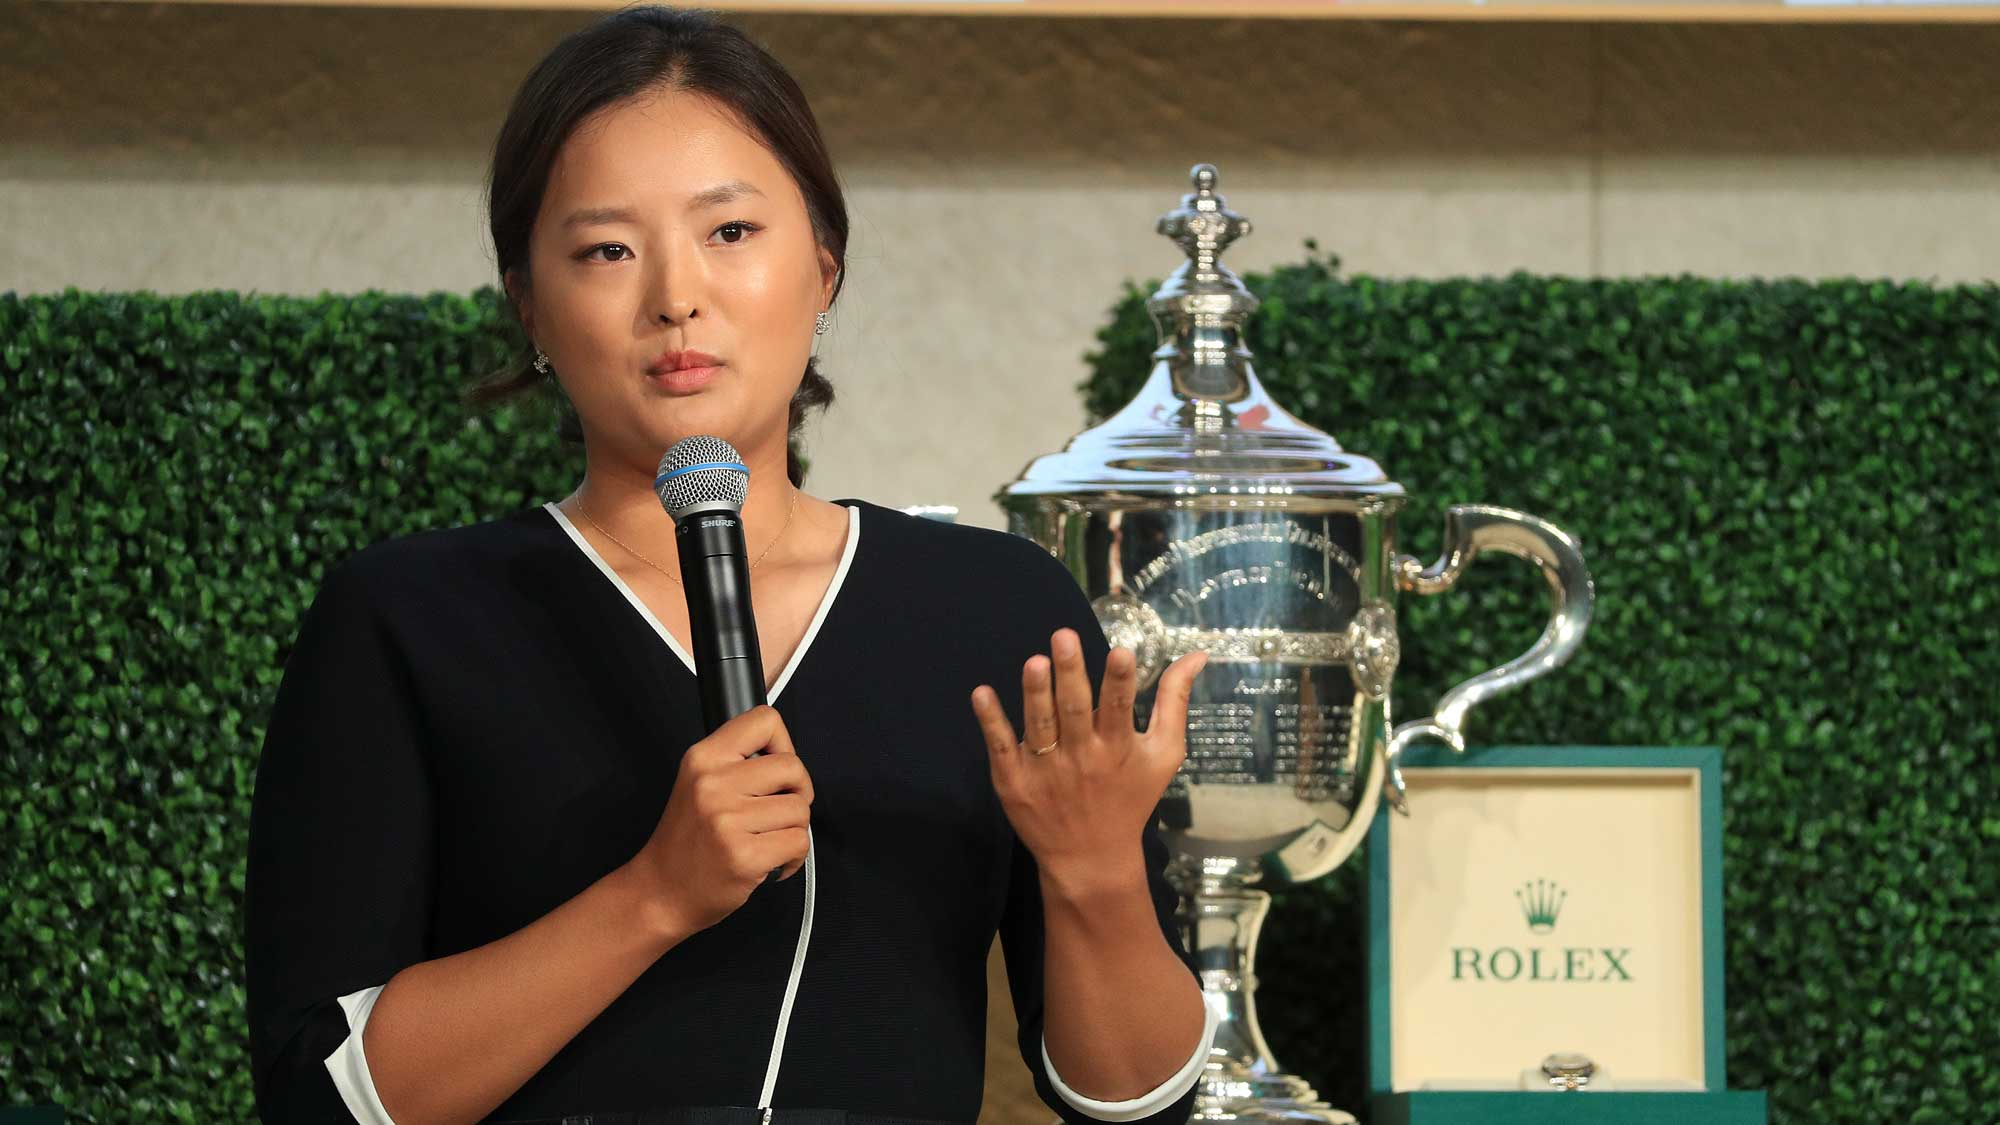 Jin Young Ko of South Korea is presented iwth the Louise Suggs Rolex Rookie of the Year award during the LPGA Rolex Players Awards at the Ritz-Carlton Golf Resort